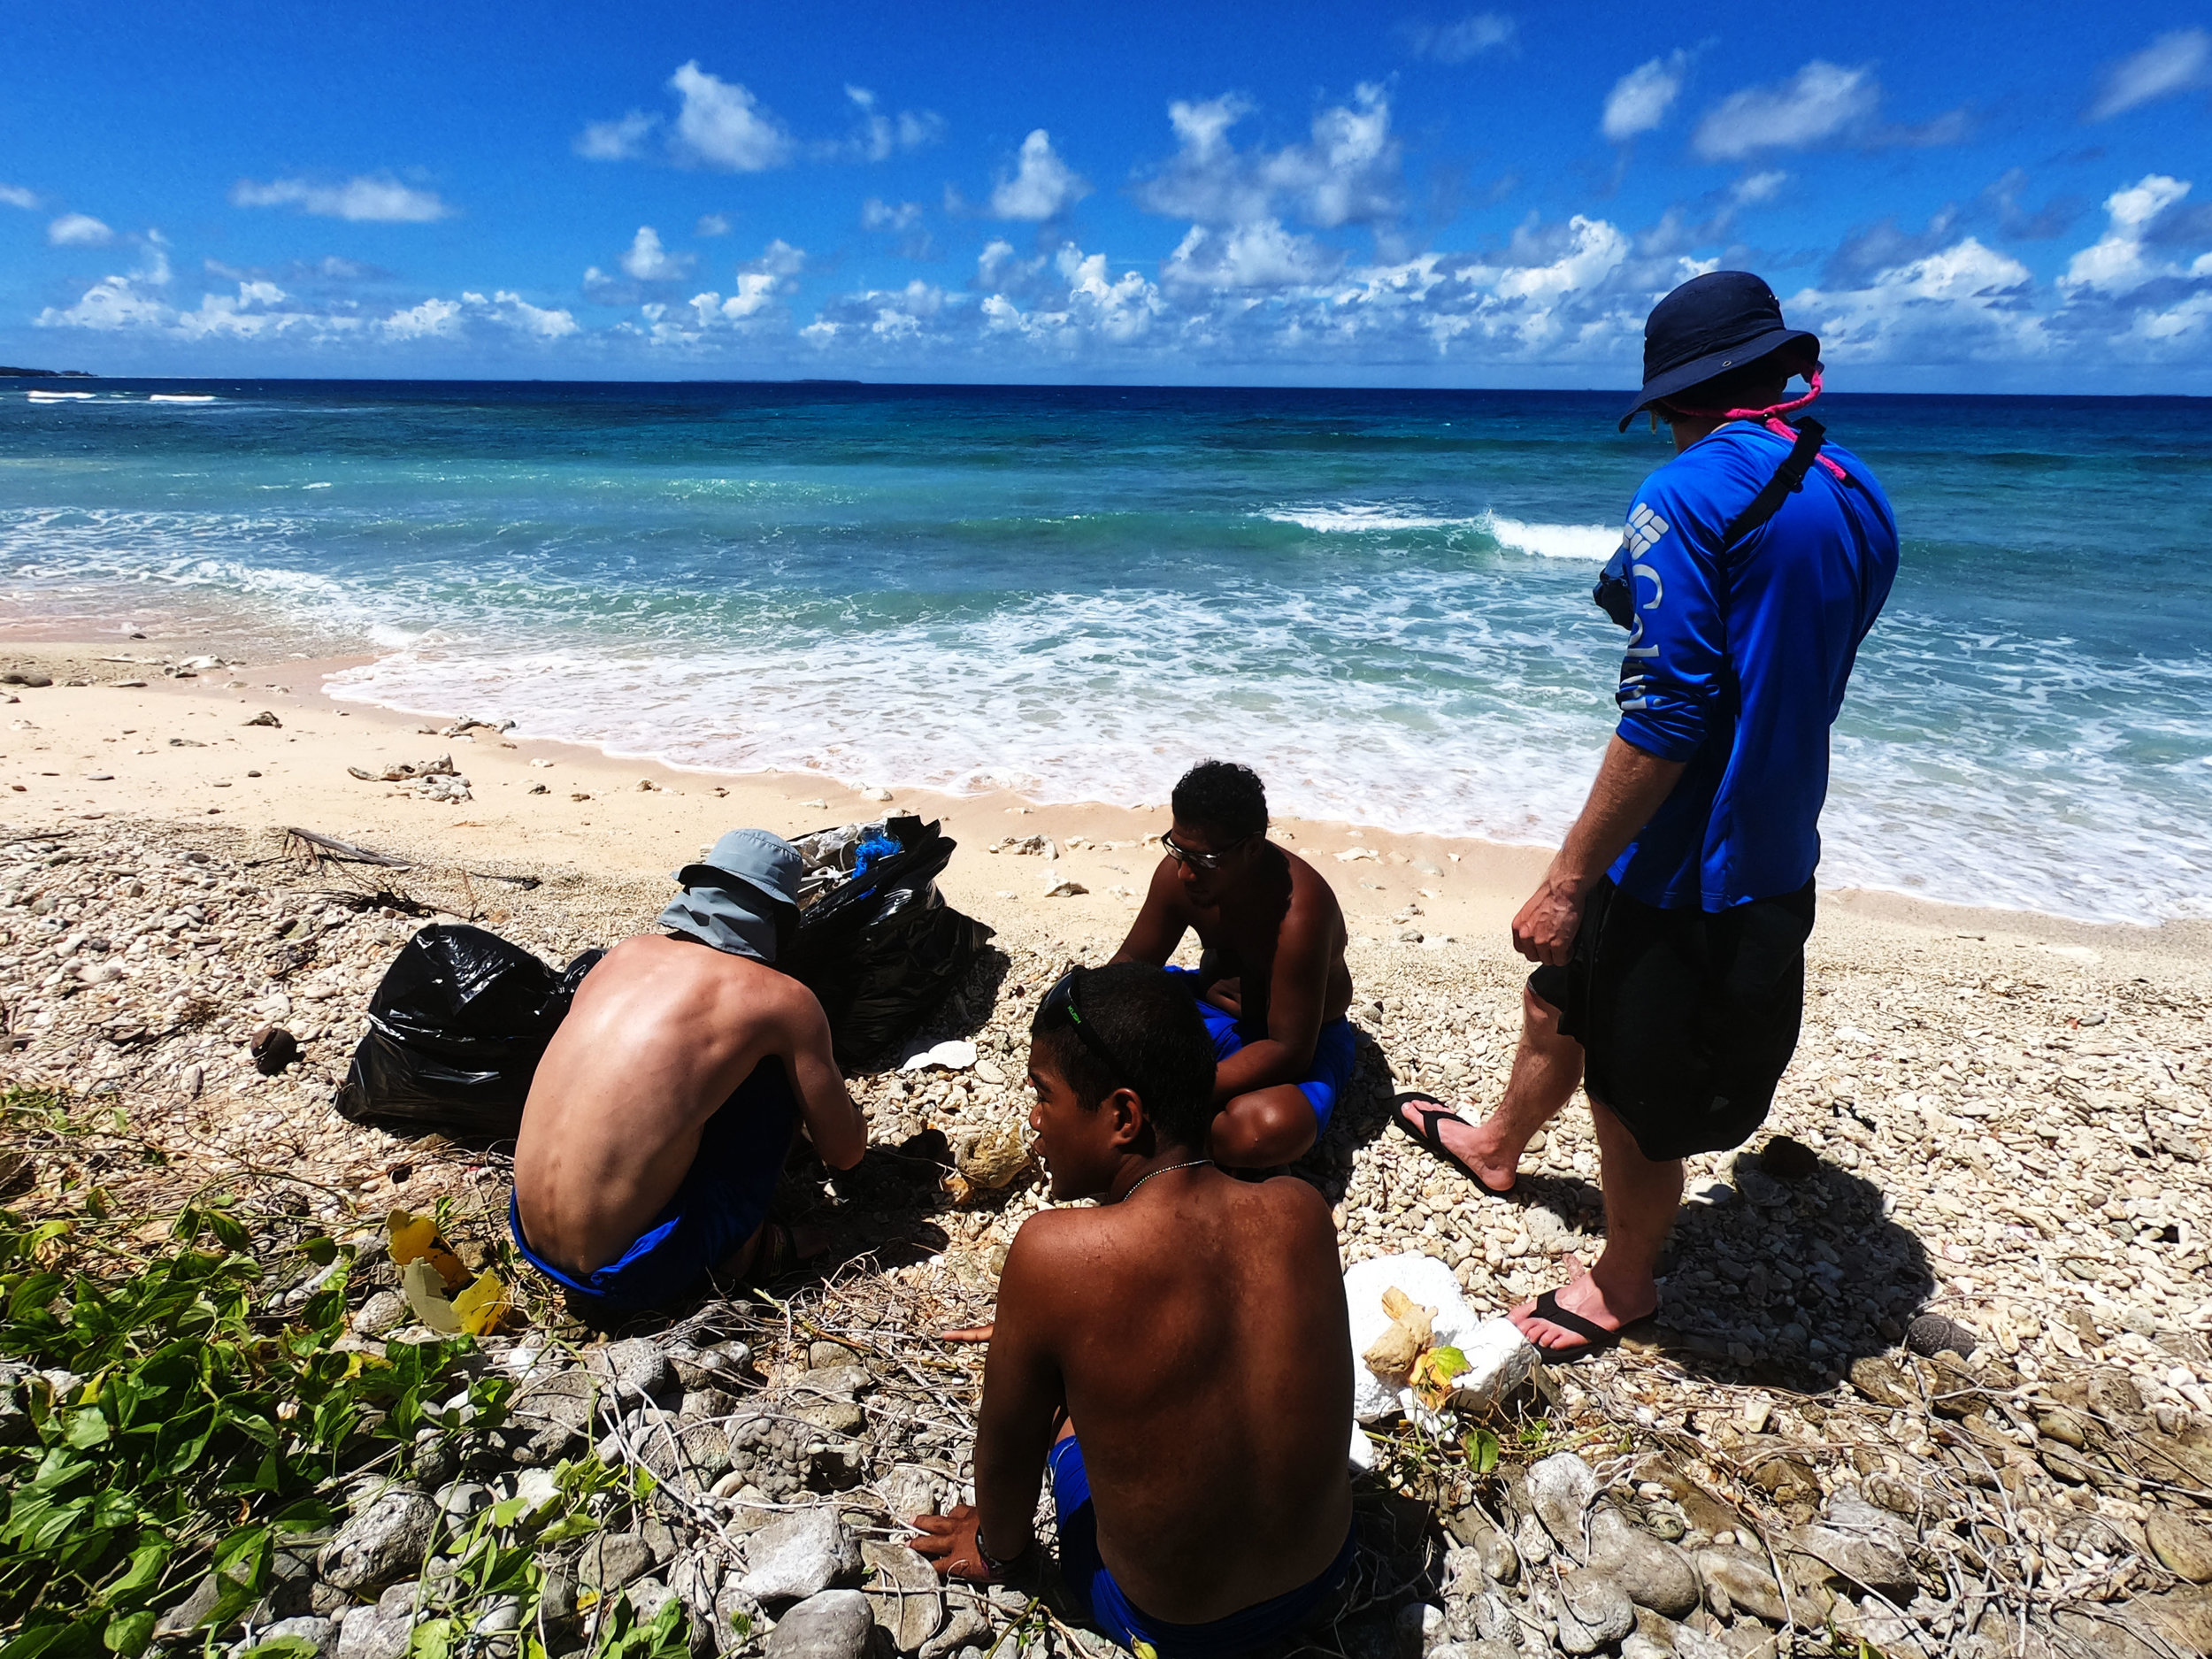 Photo: Connor Greenwood  Researcher's conducting marine debris surveys on the island of Mog Mog, led by Fuller Gerbl and Connor Greenwood.  Help us to keep our beach clean for generations to come!